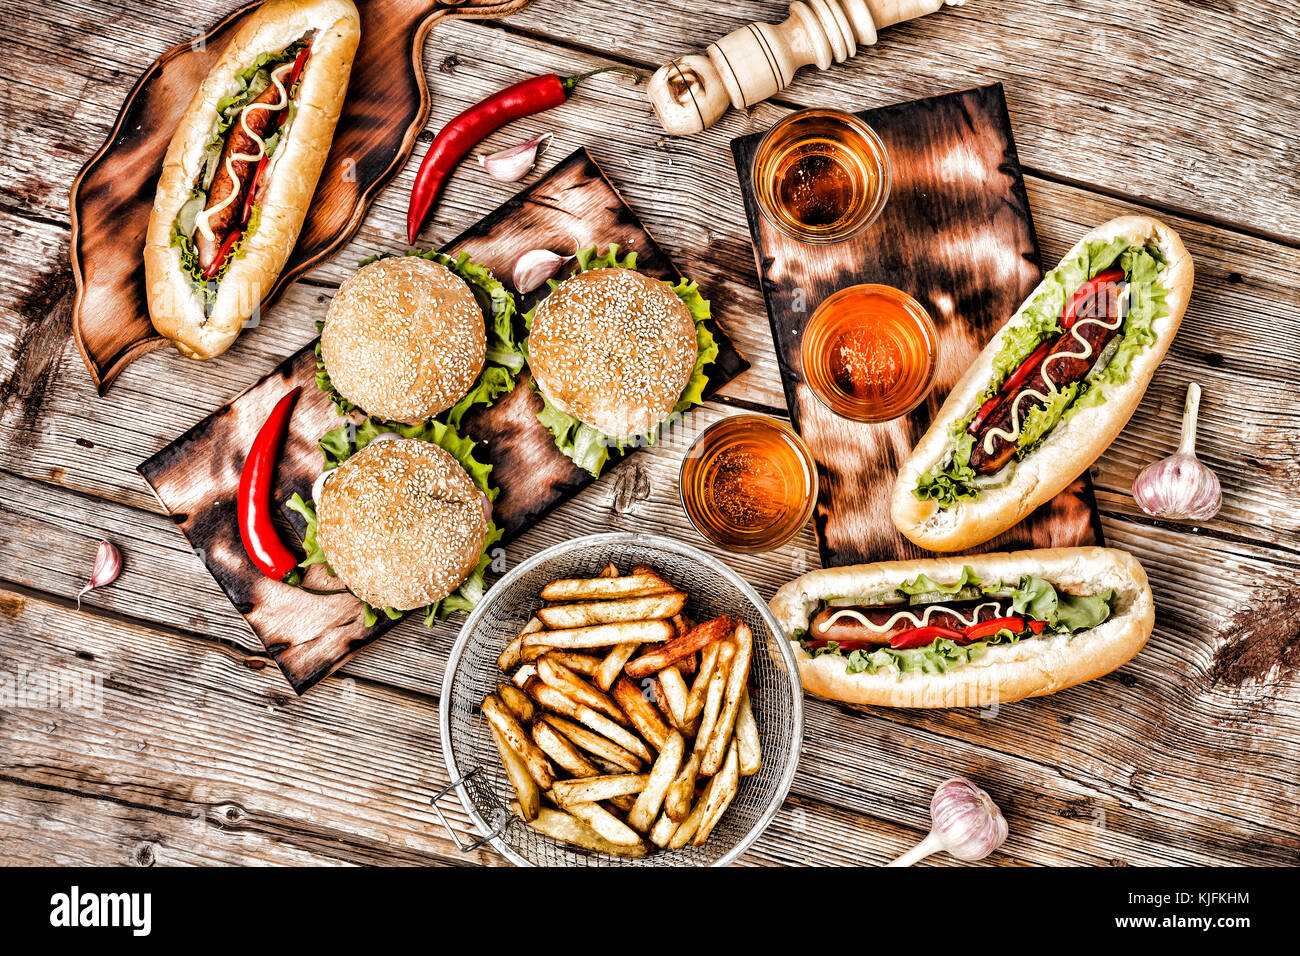 fast food food festival food buffet catering dining eating party